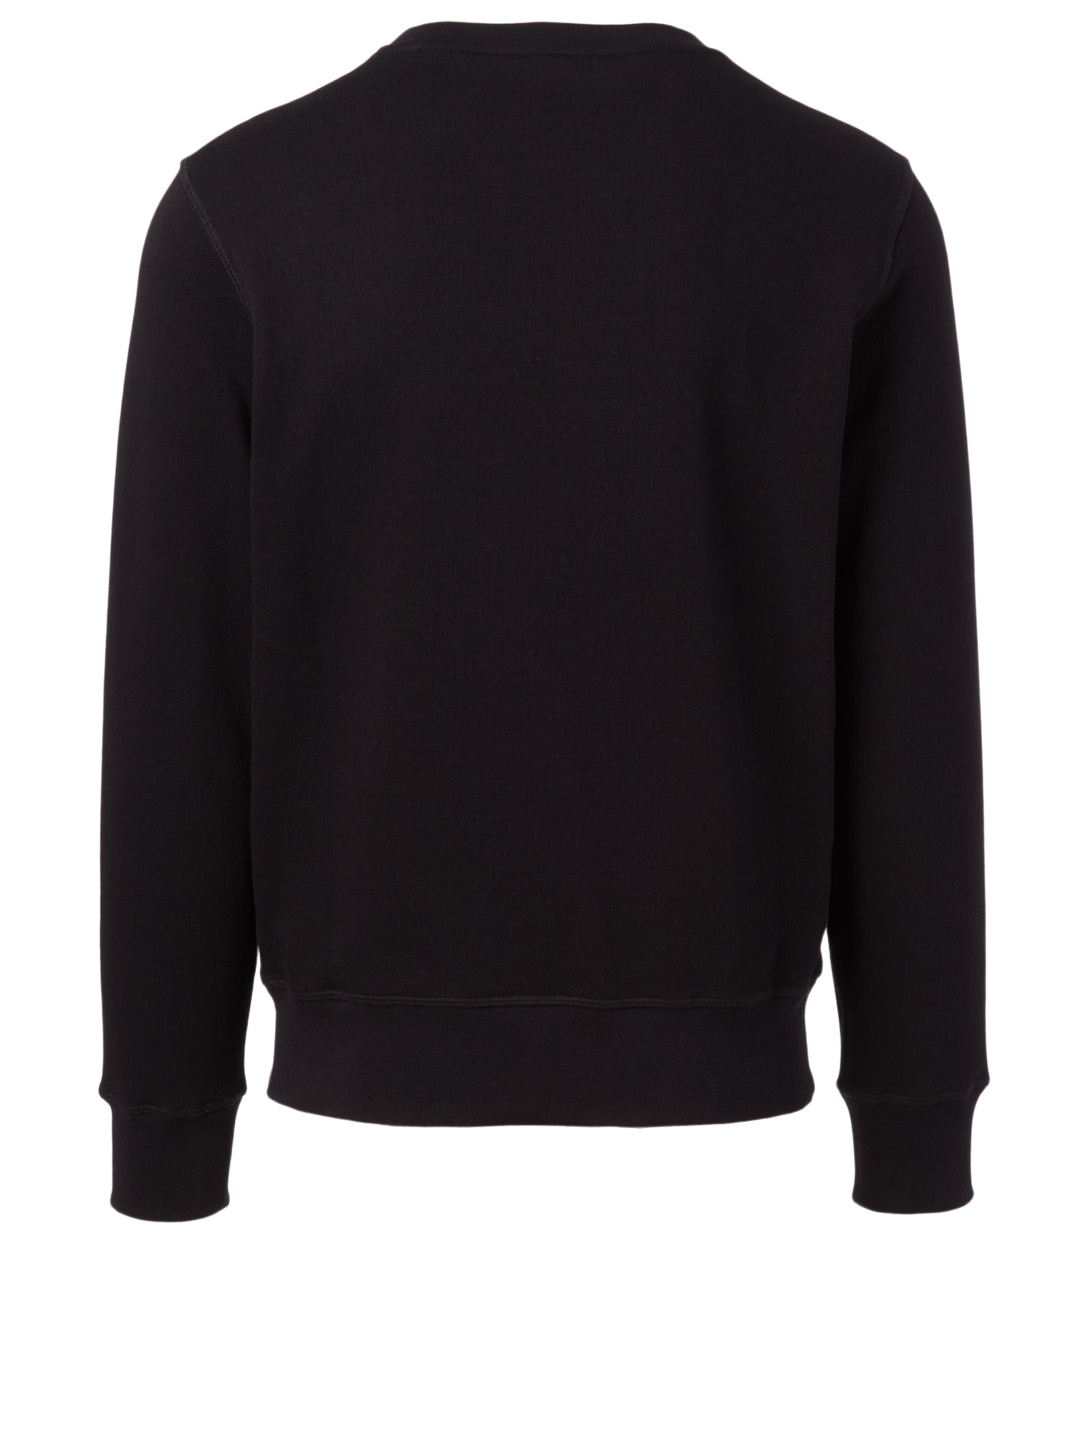 ALEXANDER MCQUEEN Cotton Graphic Sweatshirt Men's Black